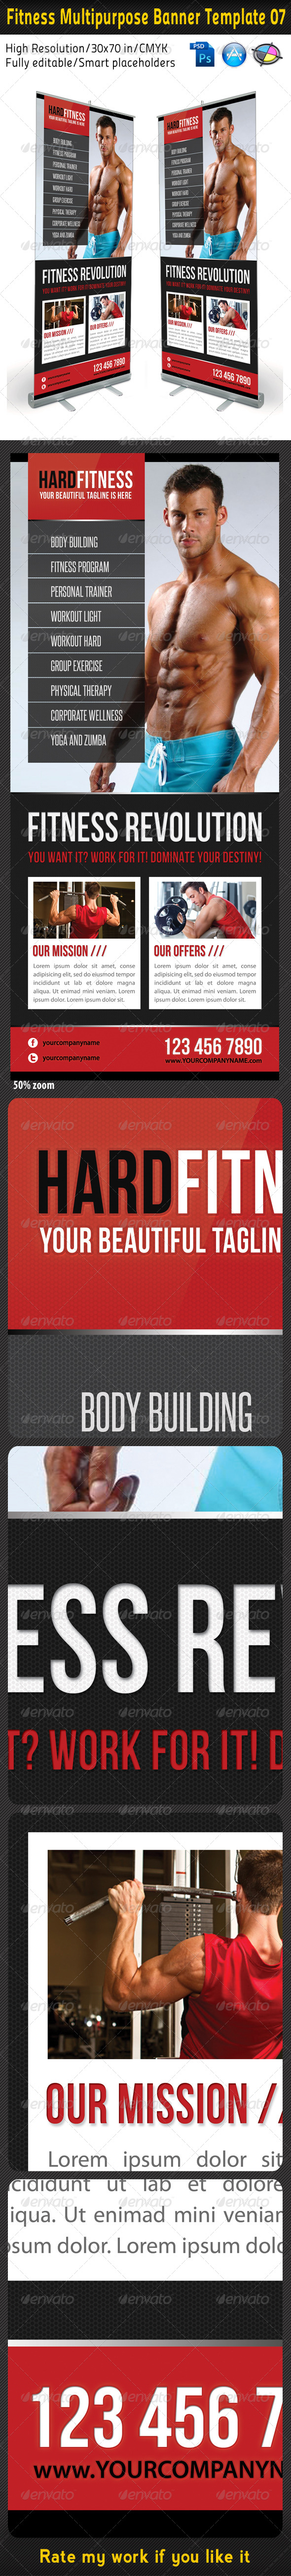 Fitness Multipurpose Banner Template 07 - Signage Print Templates